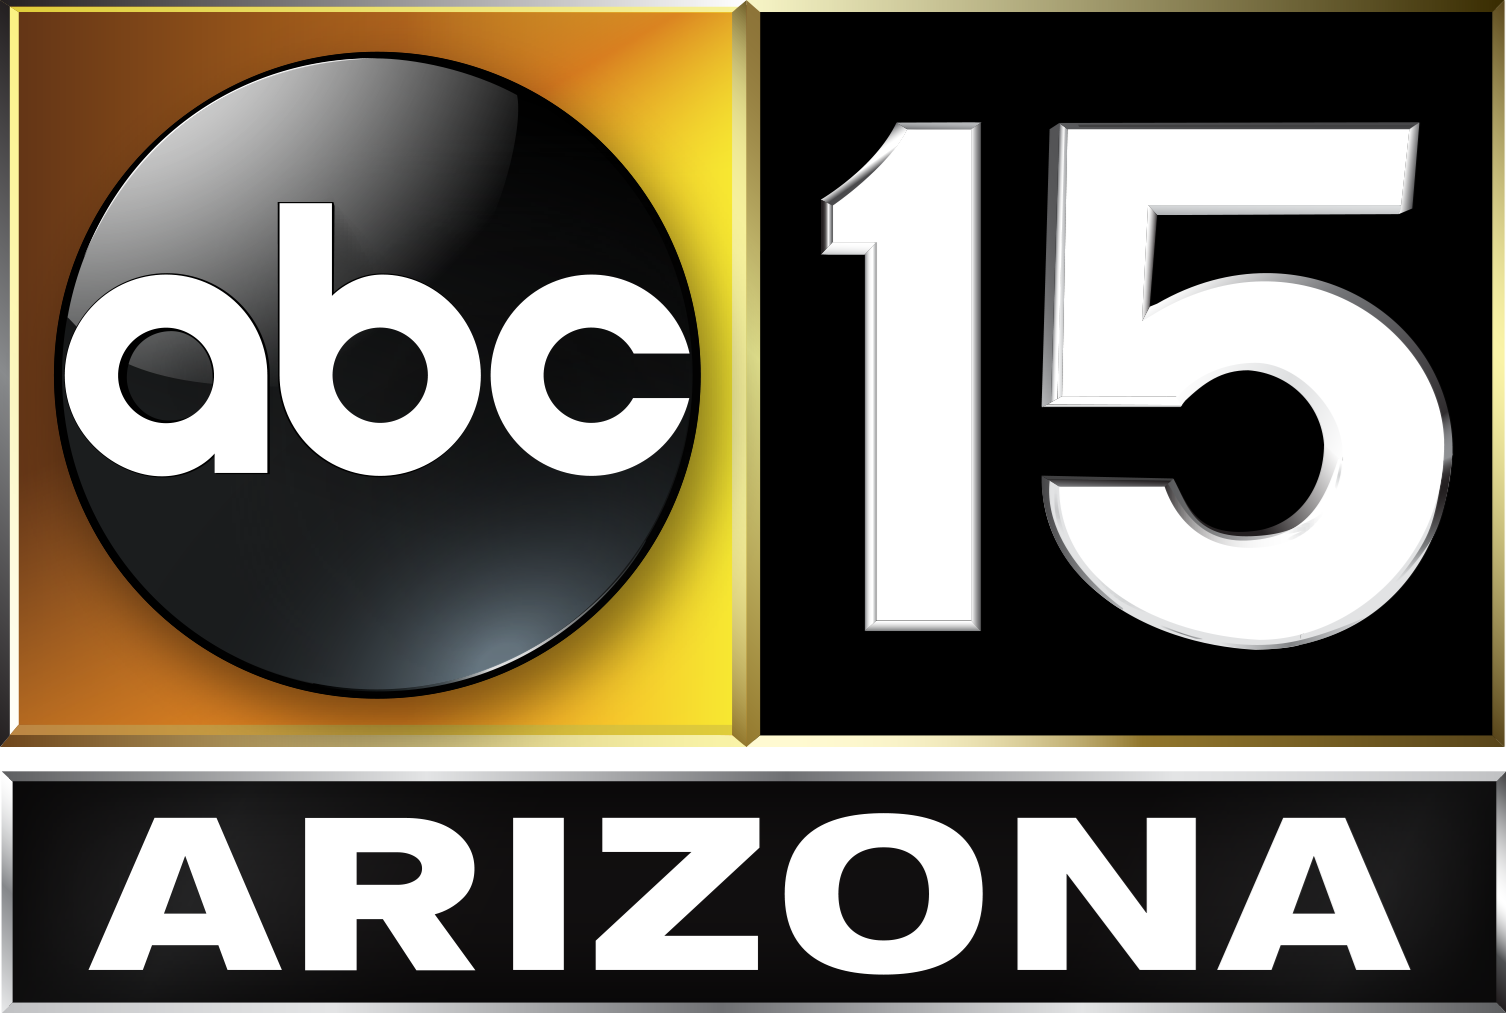 Win a 500 visa giftcard from abc15 sharon gagon pinterest local news covers awkward interviews from phoenix comic con bleeding cool news and rumors 1betcityfo Images